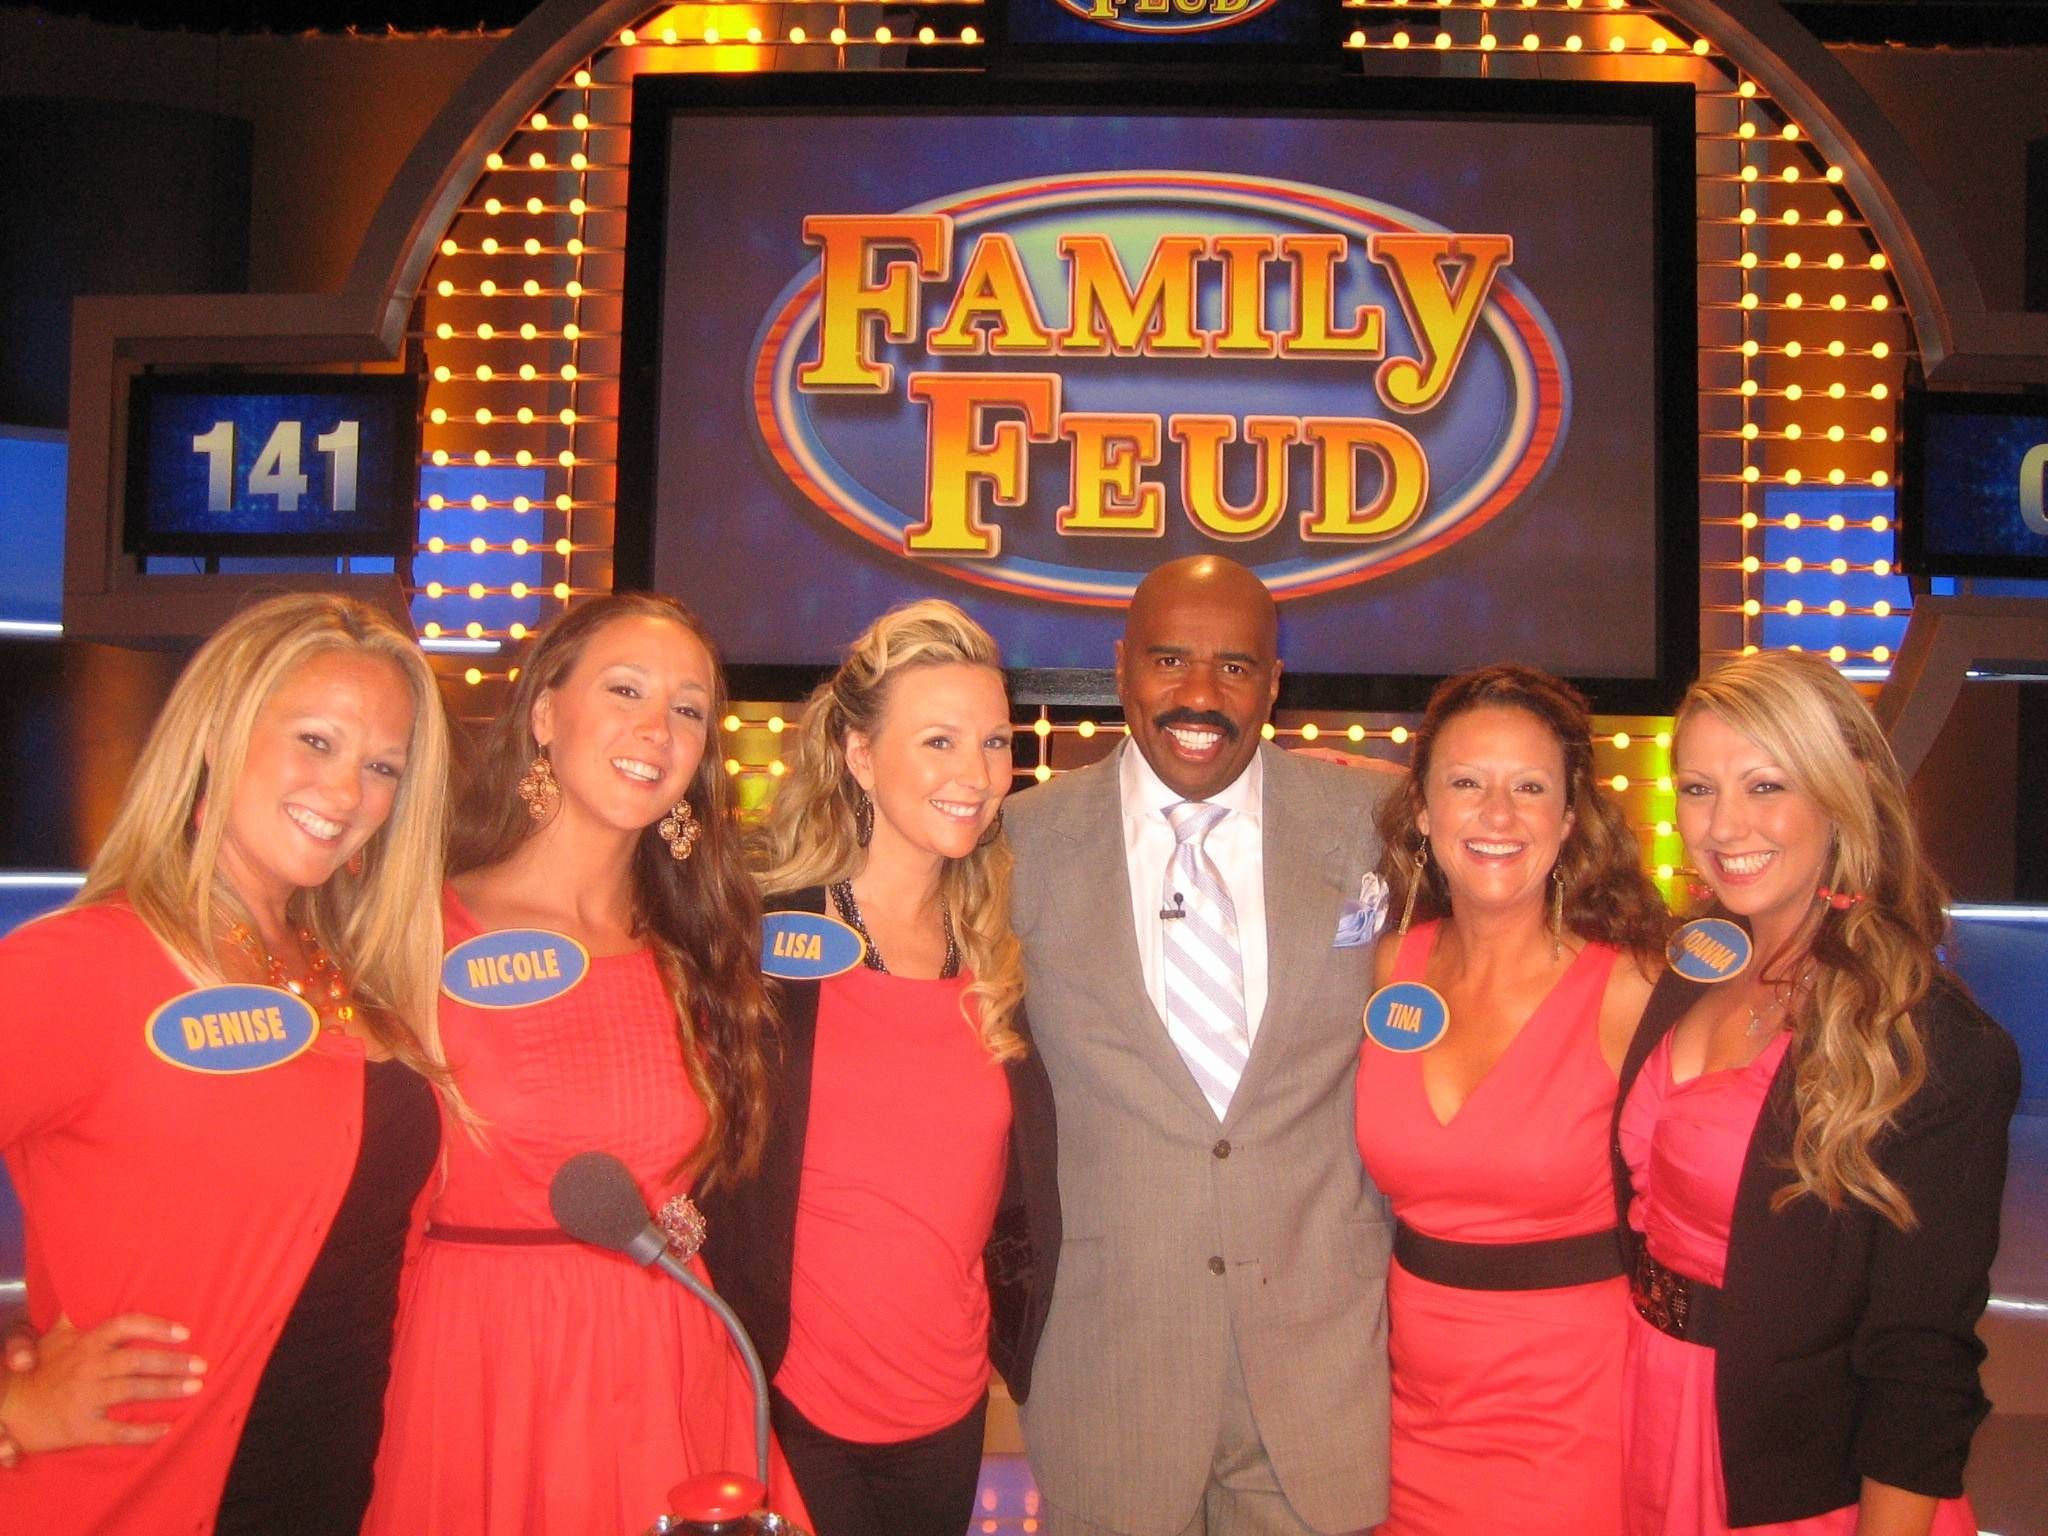 "Five sisters from the Northwest suburbs — Tina O'Donnell of Mount Prospect, Lisa Altmeyer of Elgin, Denise Spallone of Park Ridge, Nicole Dubak of Des Plaines and Joanna Molnar of Park Ridge — competed on ""Family Feud"" in 2012. The show is hosted by Steve Harvey."